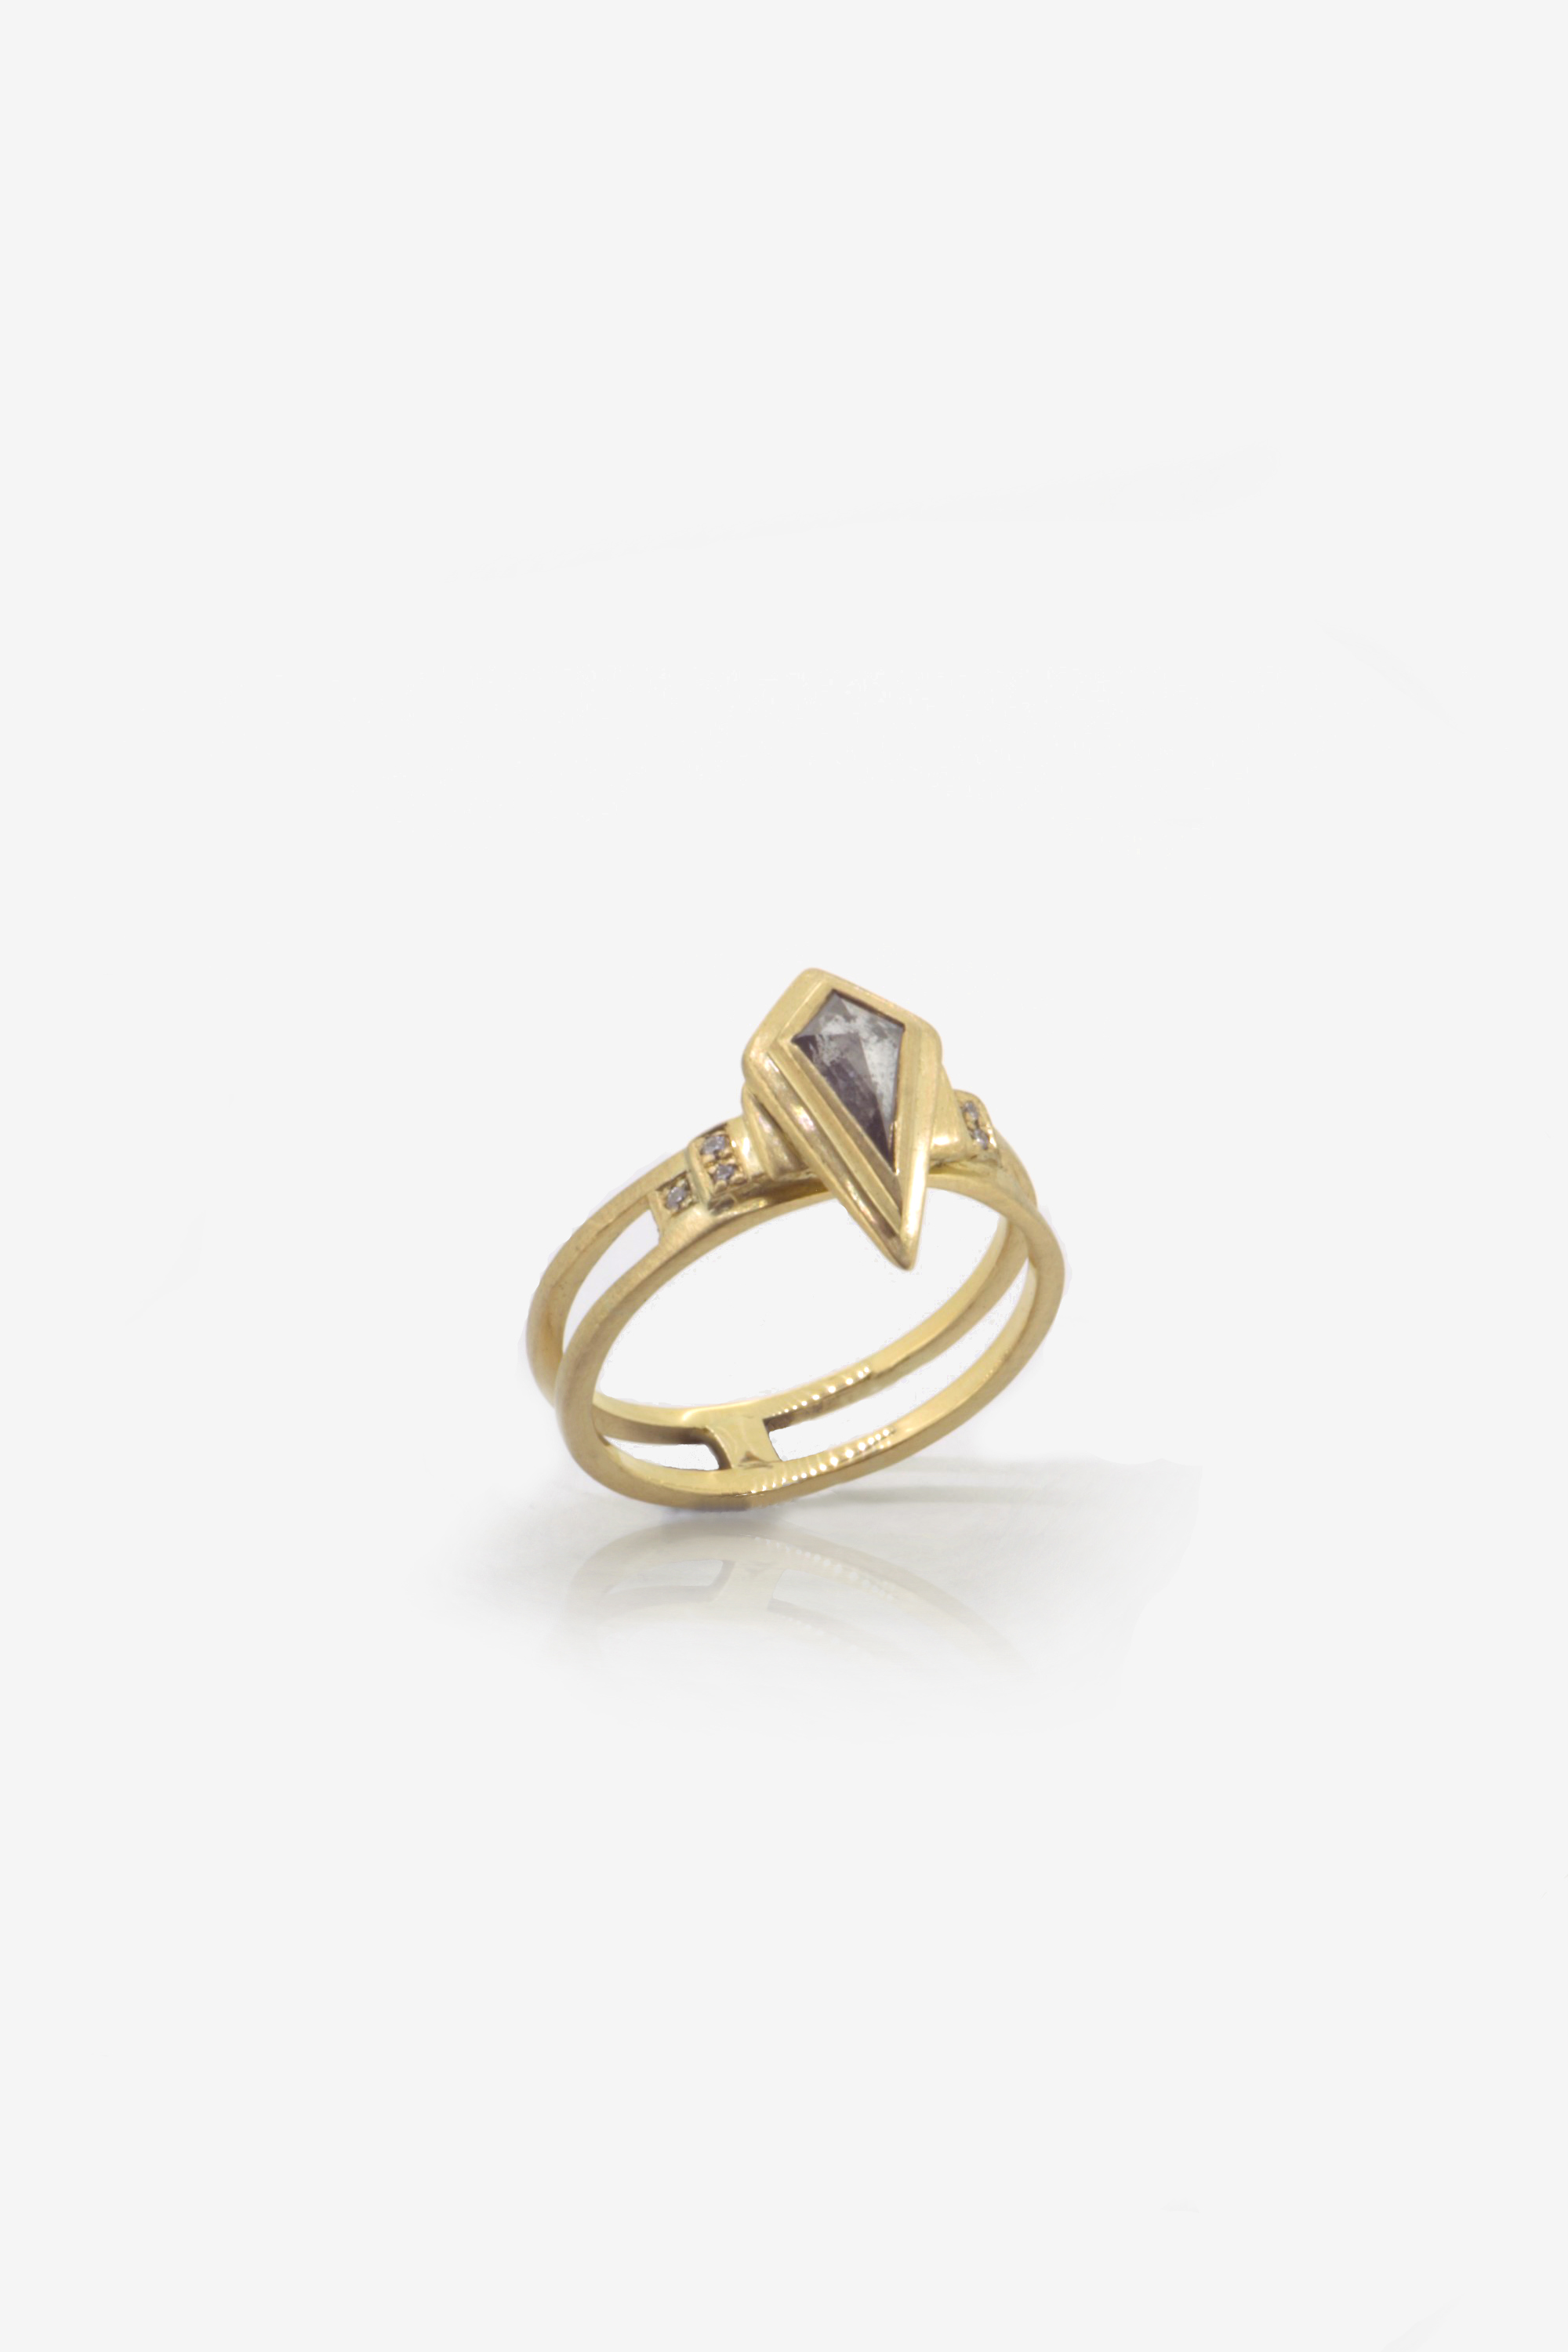 0.41ct Conflict free Salt Pepper diamond ring in Fairtrade gold